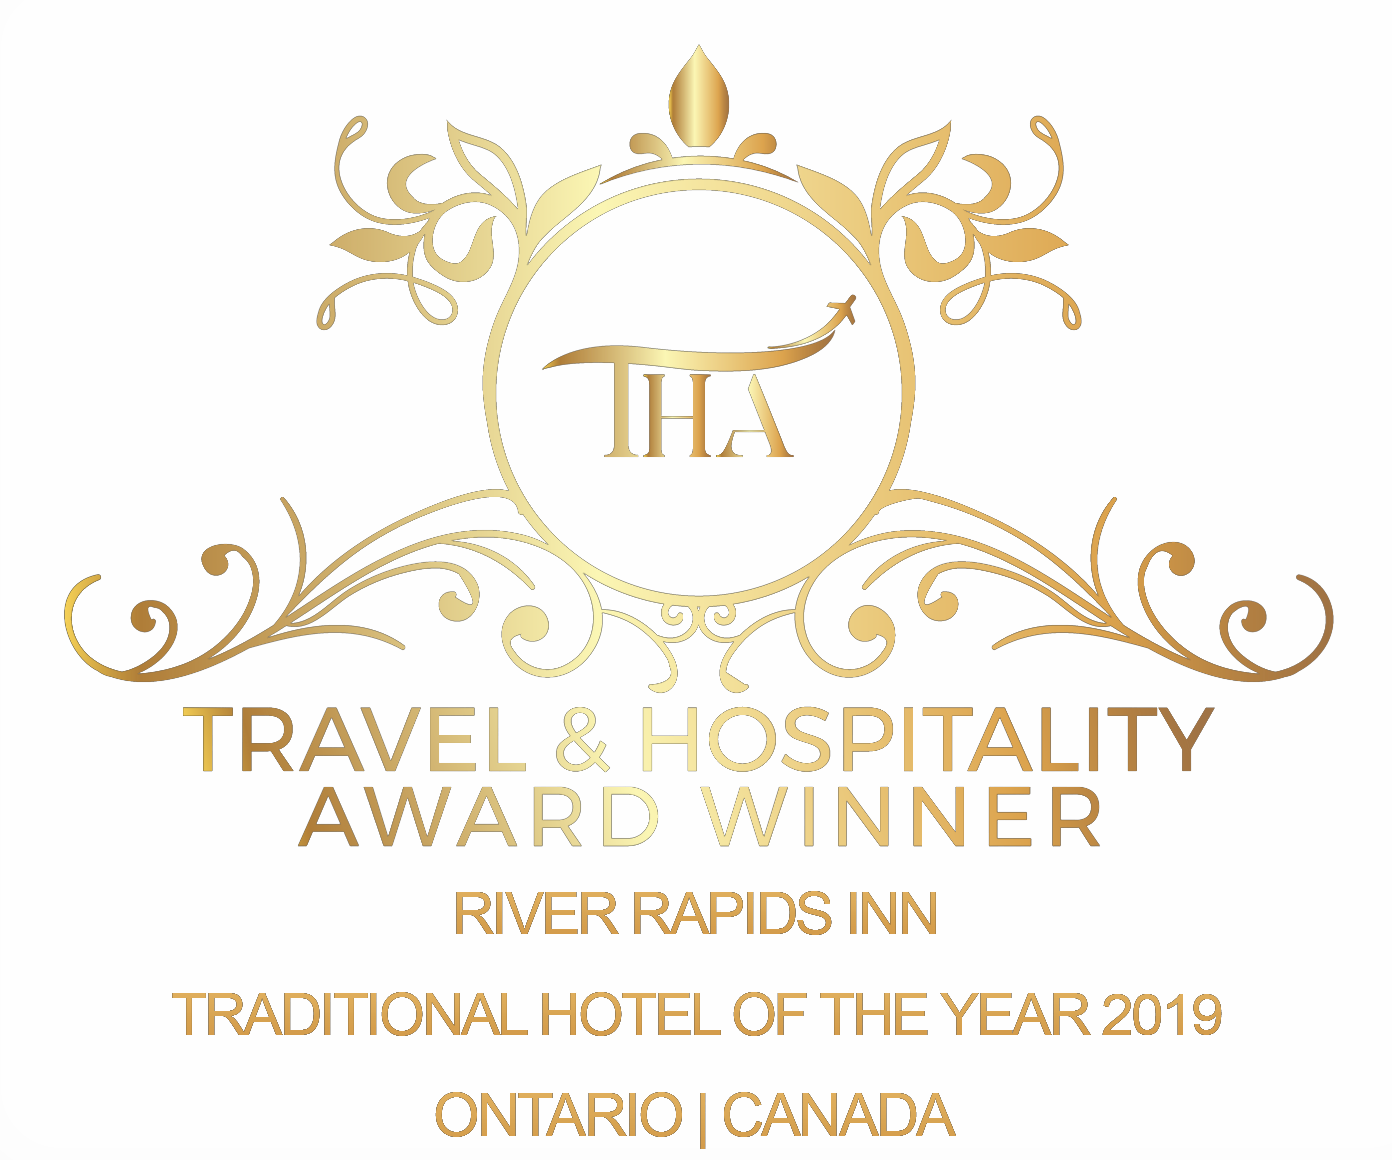 River Rapids 2019 Award Winner for Travel and Hospitality